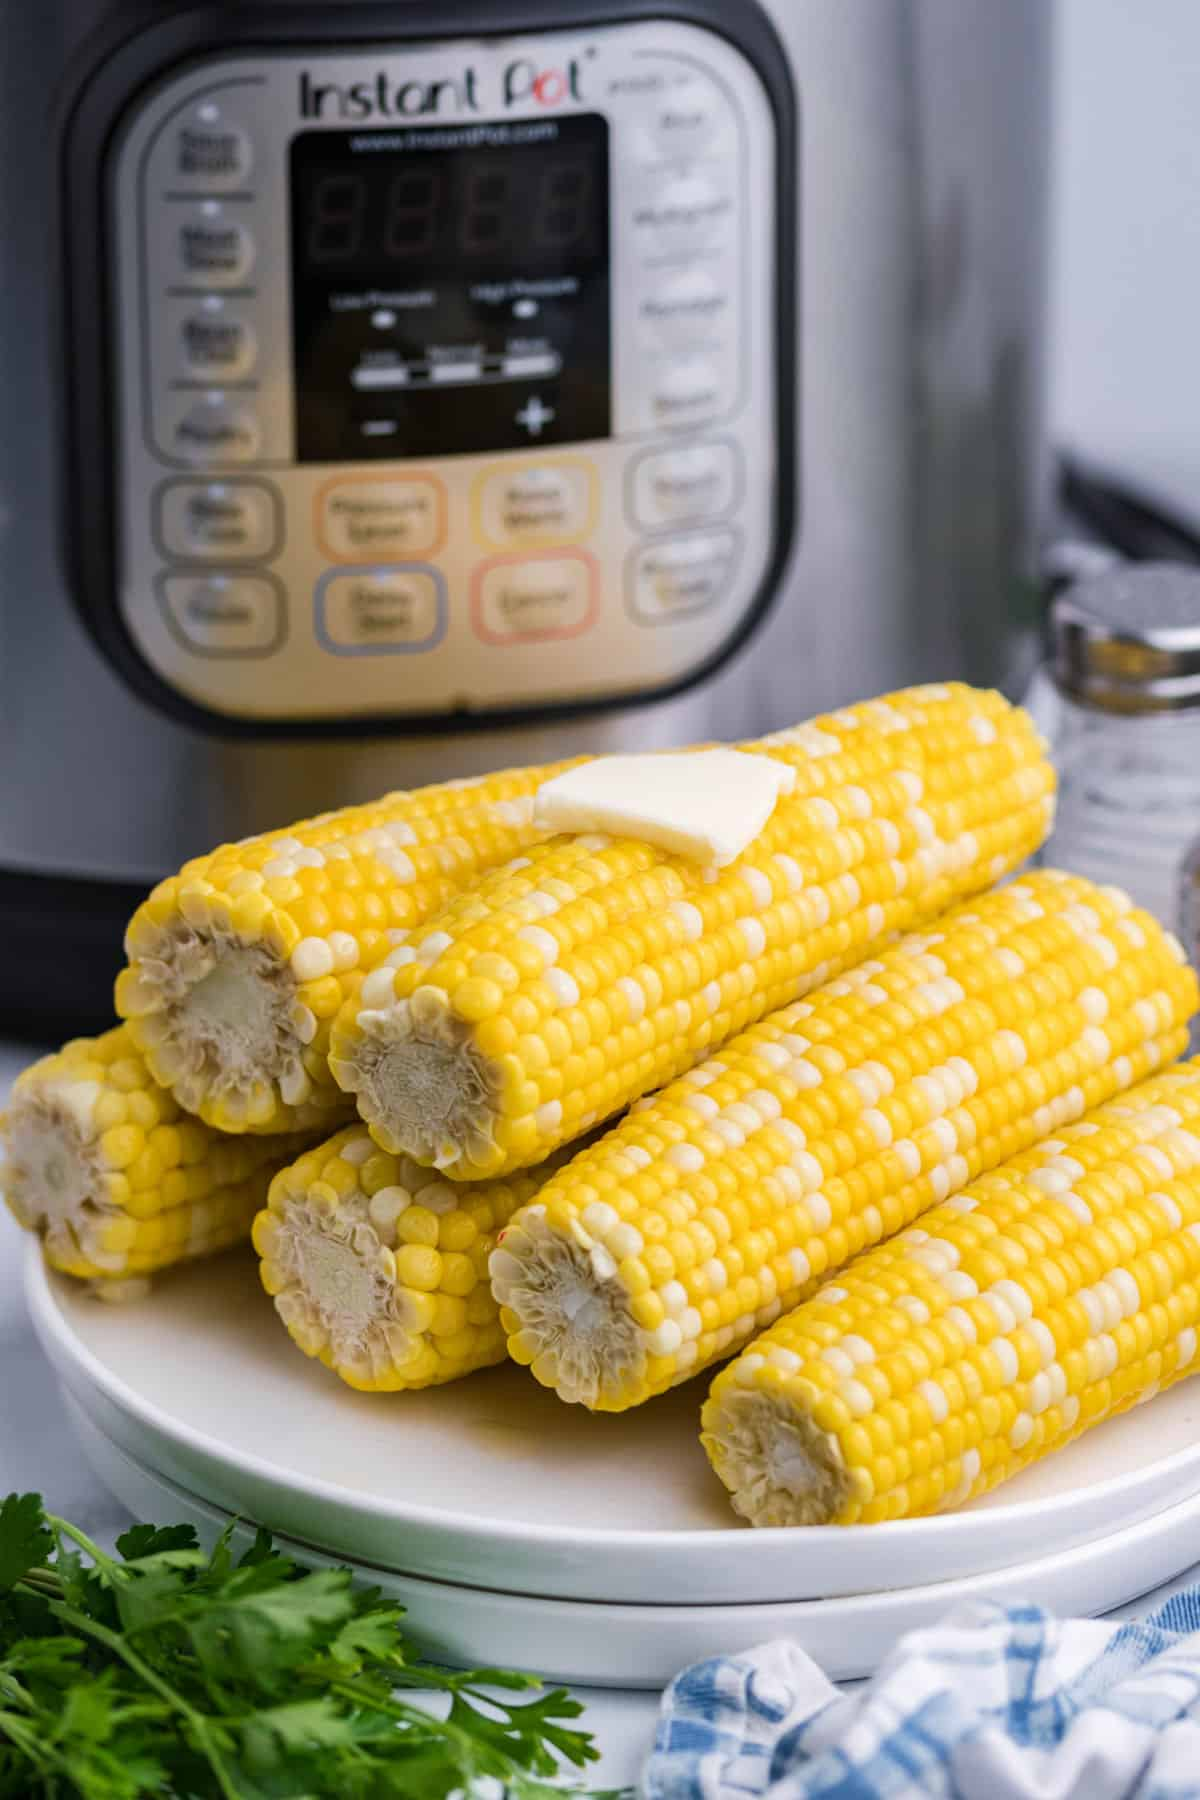 Corn on the cob stacked on a plate with instant pot in background.